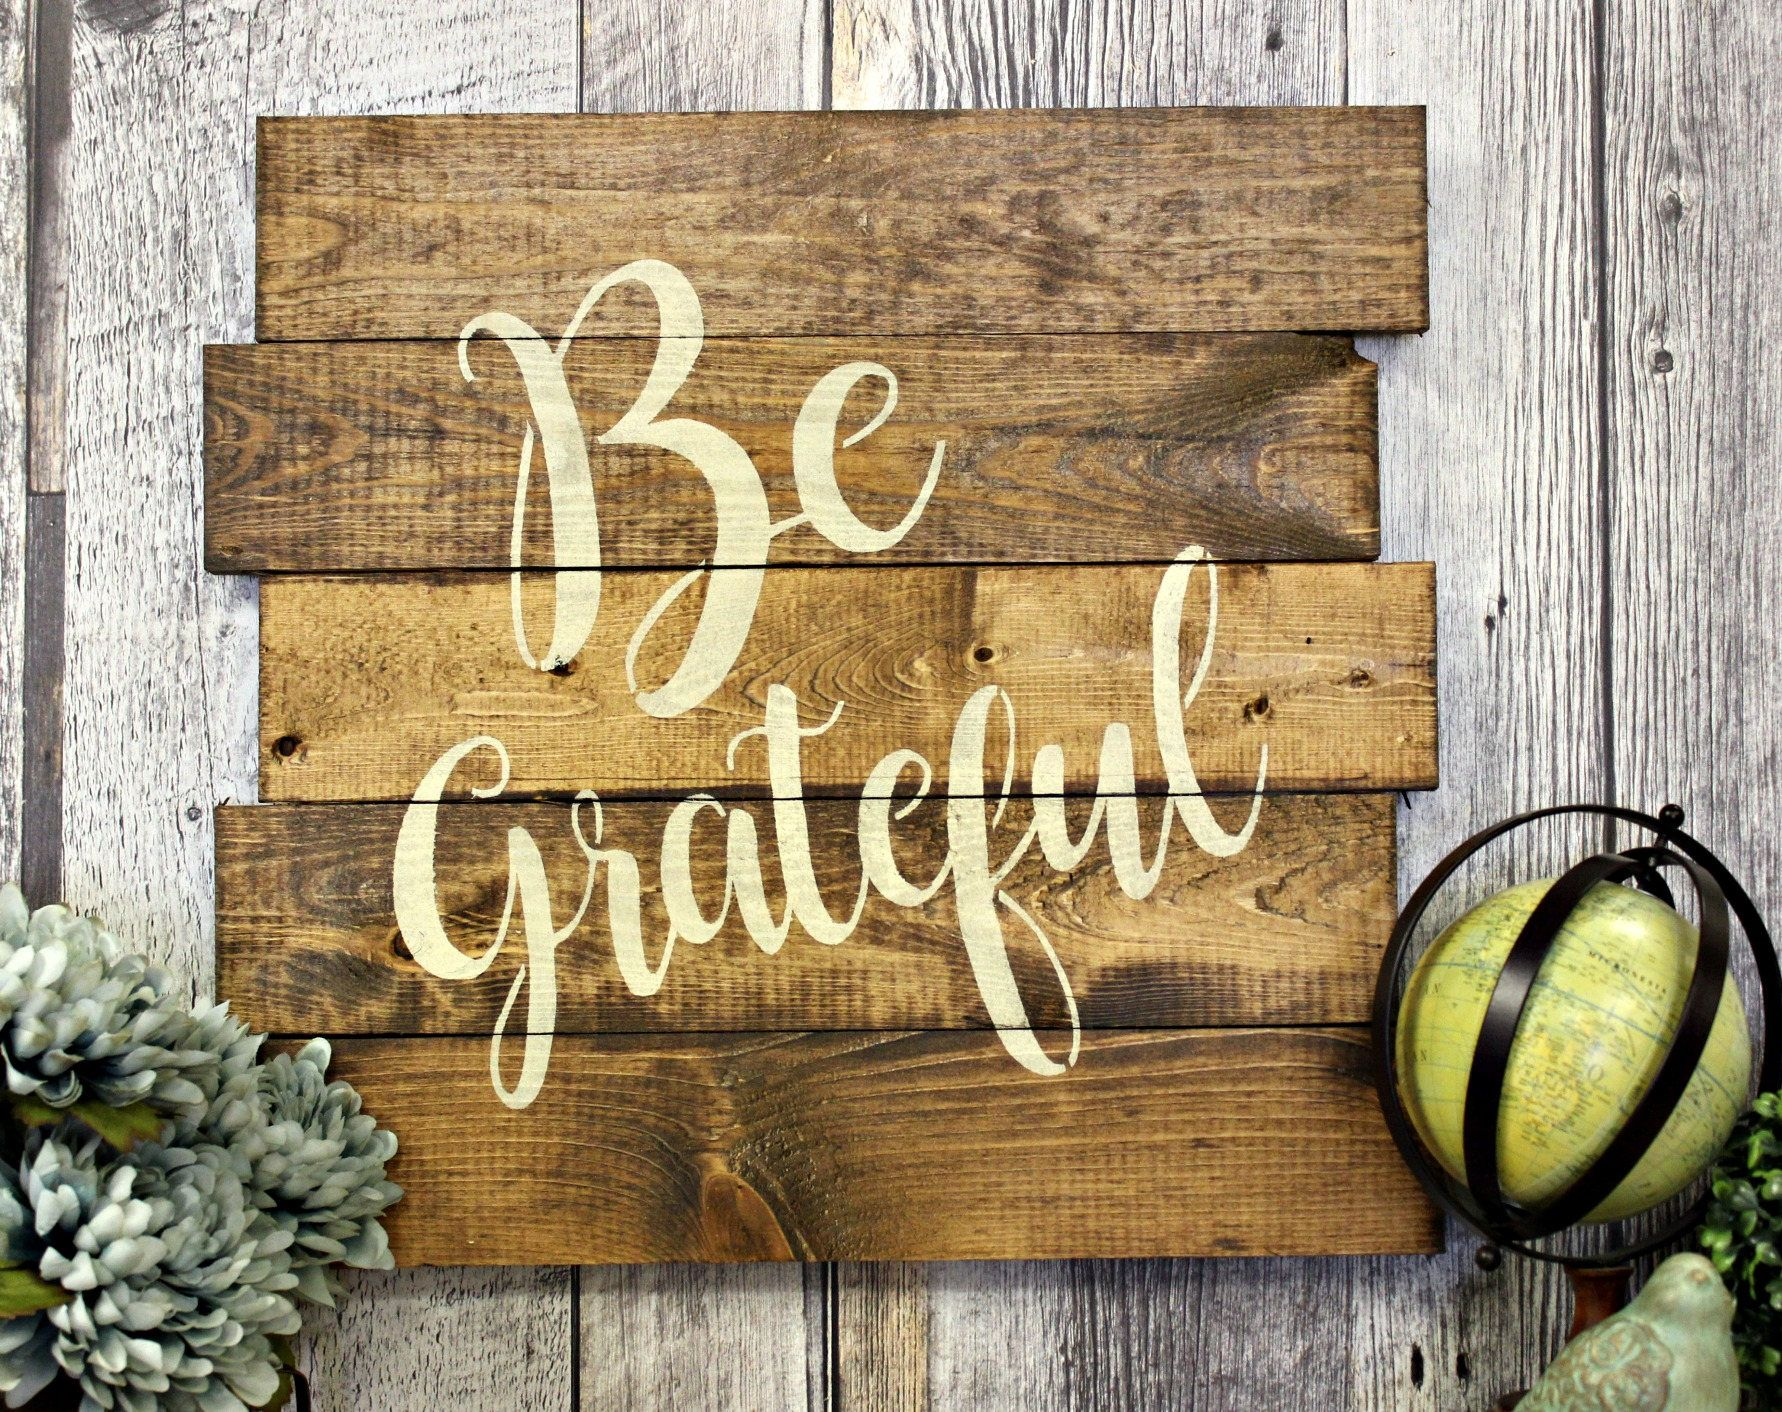 Country Decor Wood Signs Endearing Be Gratefulrustic Decorwood Signcountrywall Decorliving Inspiration